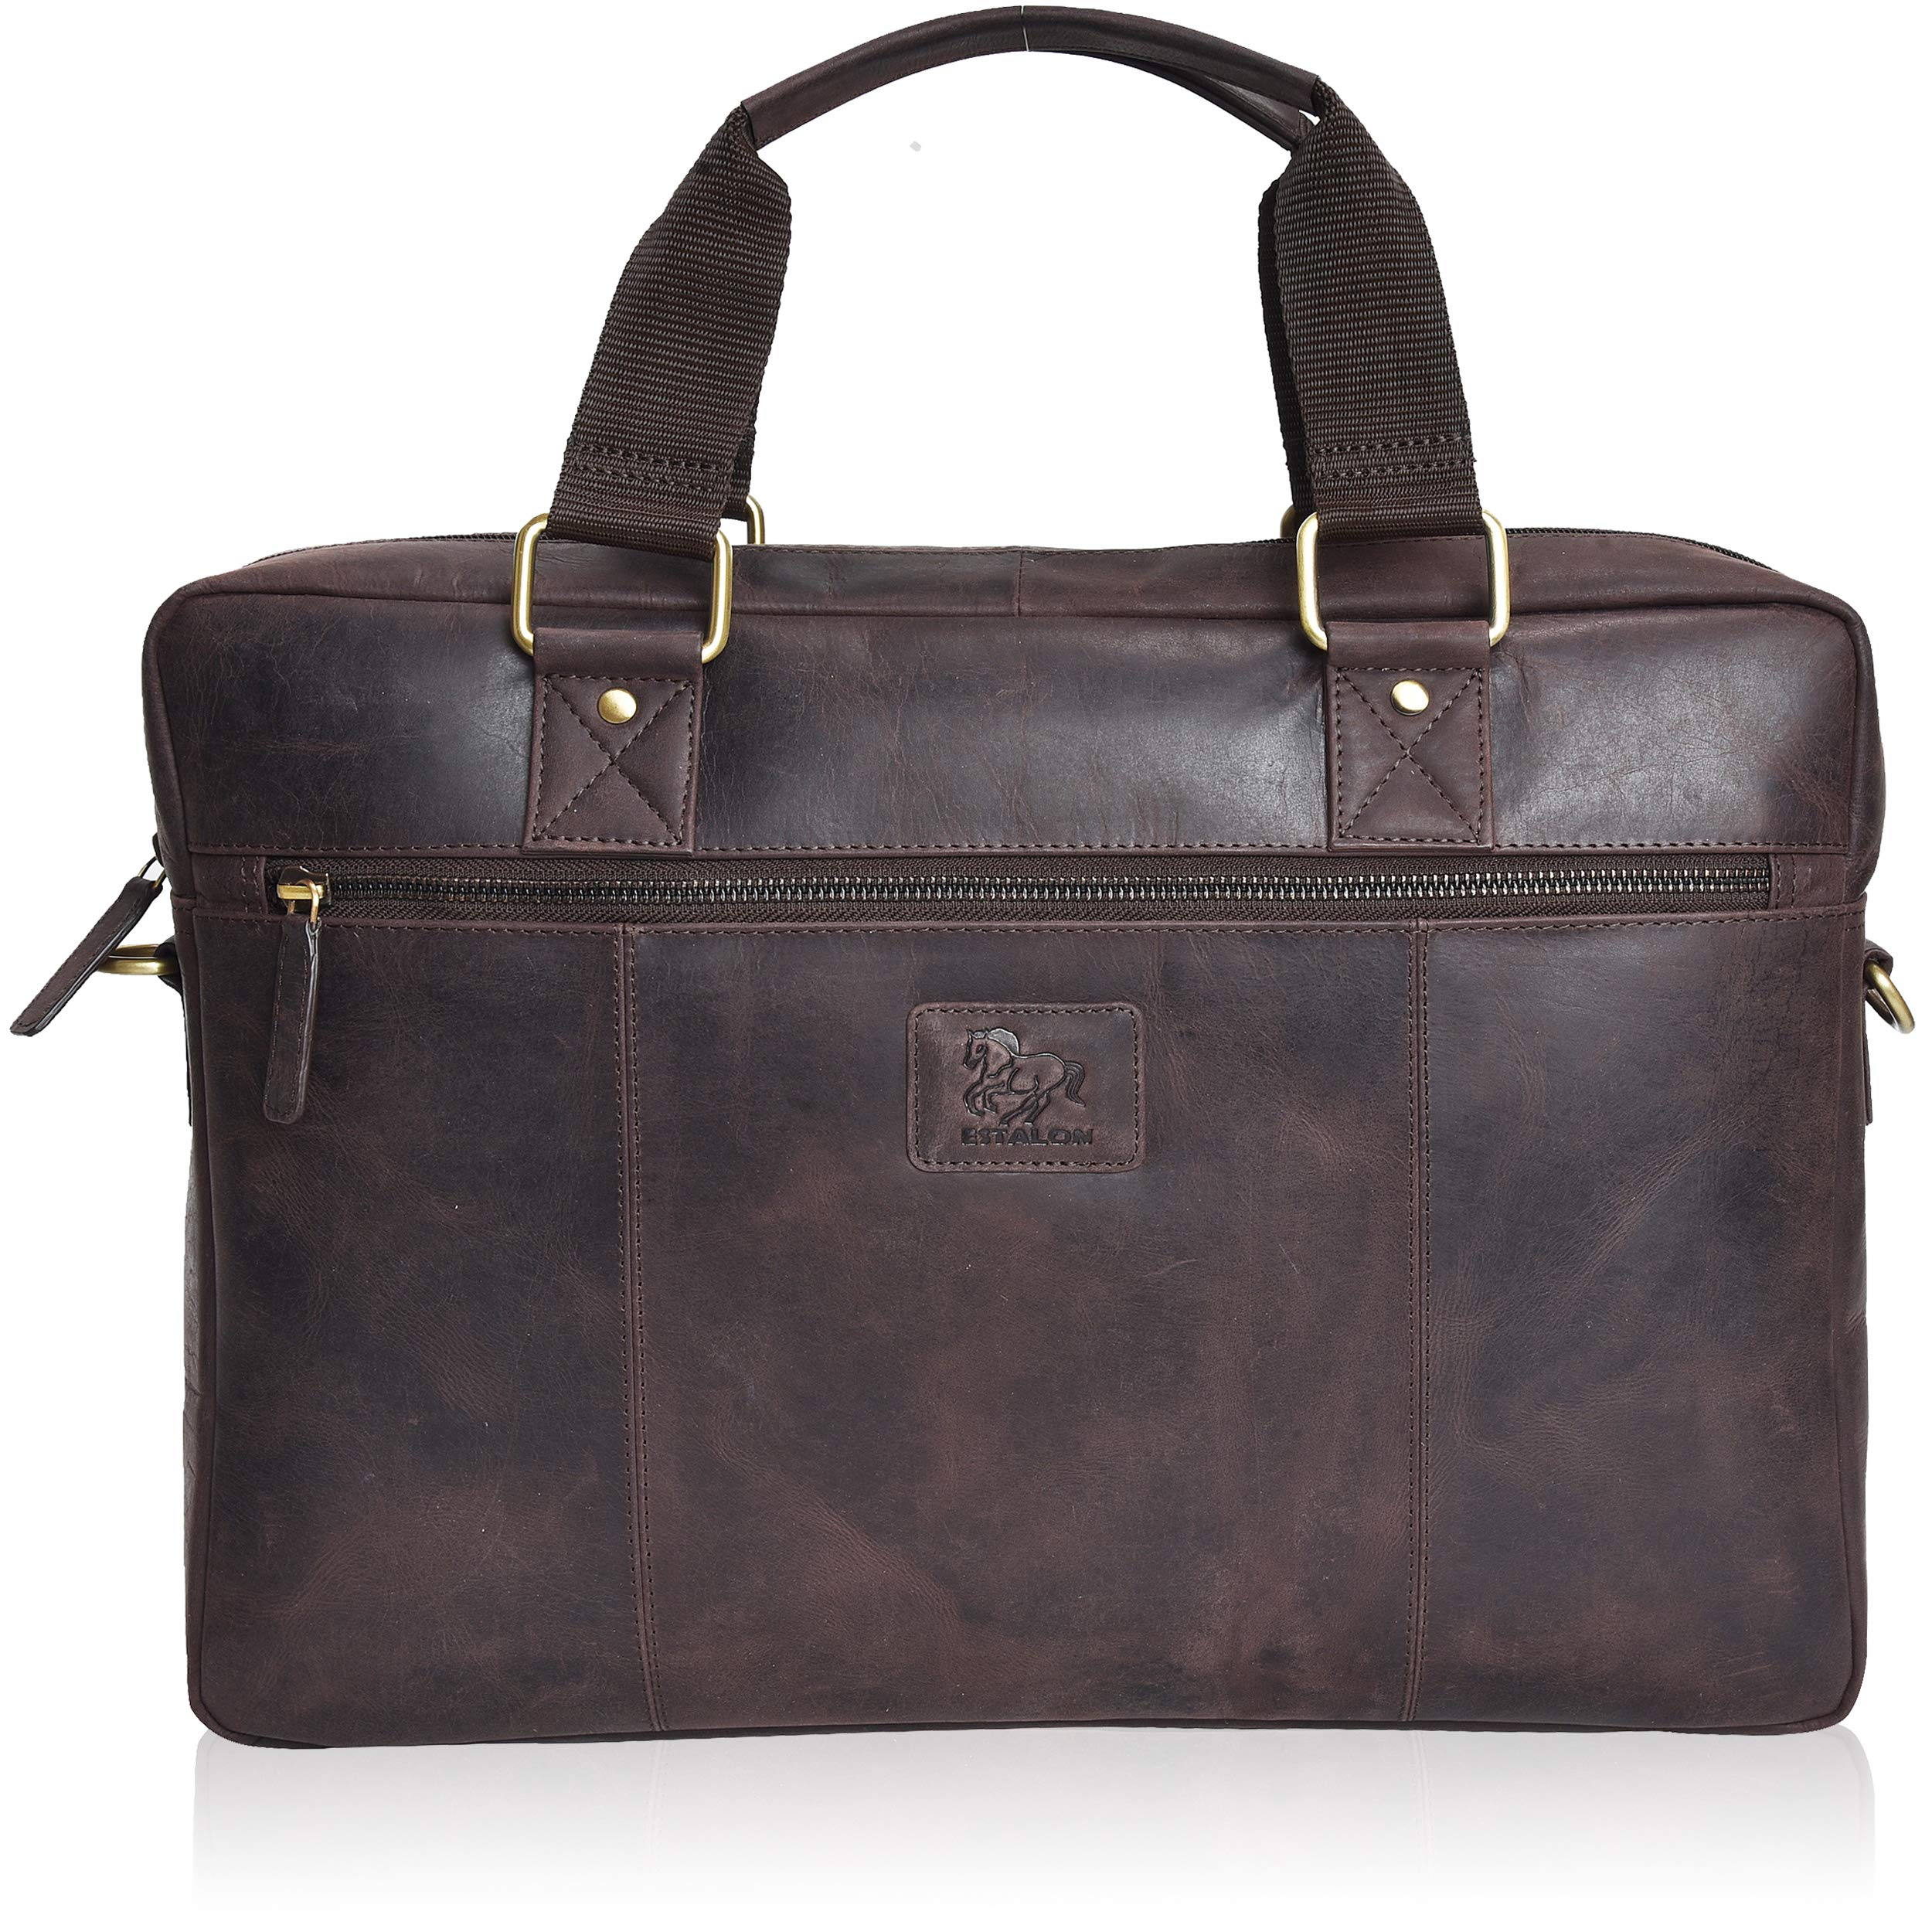 Laptop Leather Messenger Bag for Men - Premium Office Briefcase 15'' Vintage Rustic Side Brown Business Case Satchel Bags